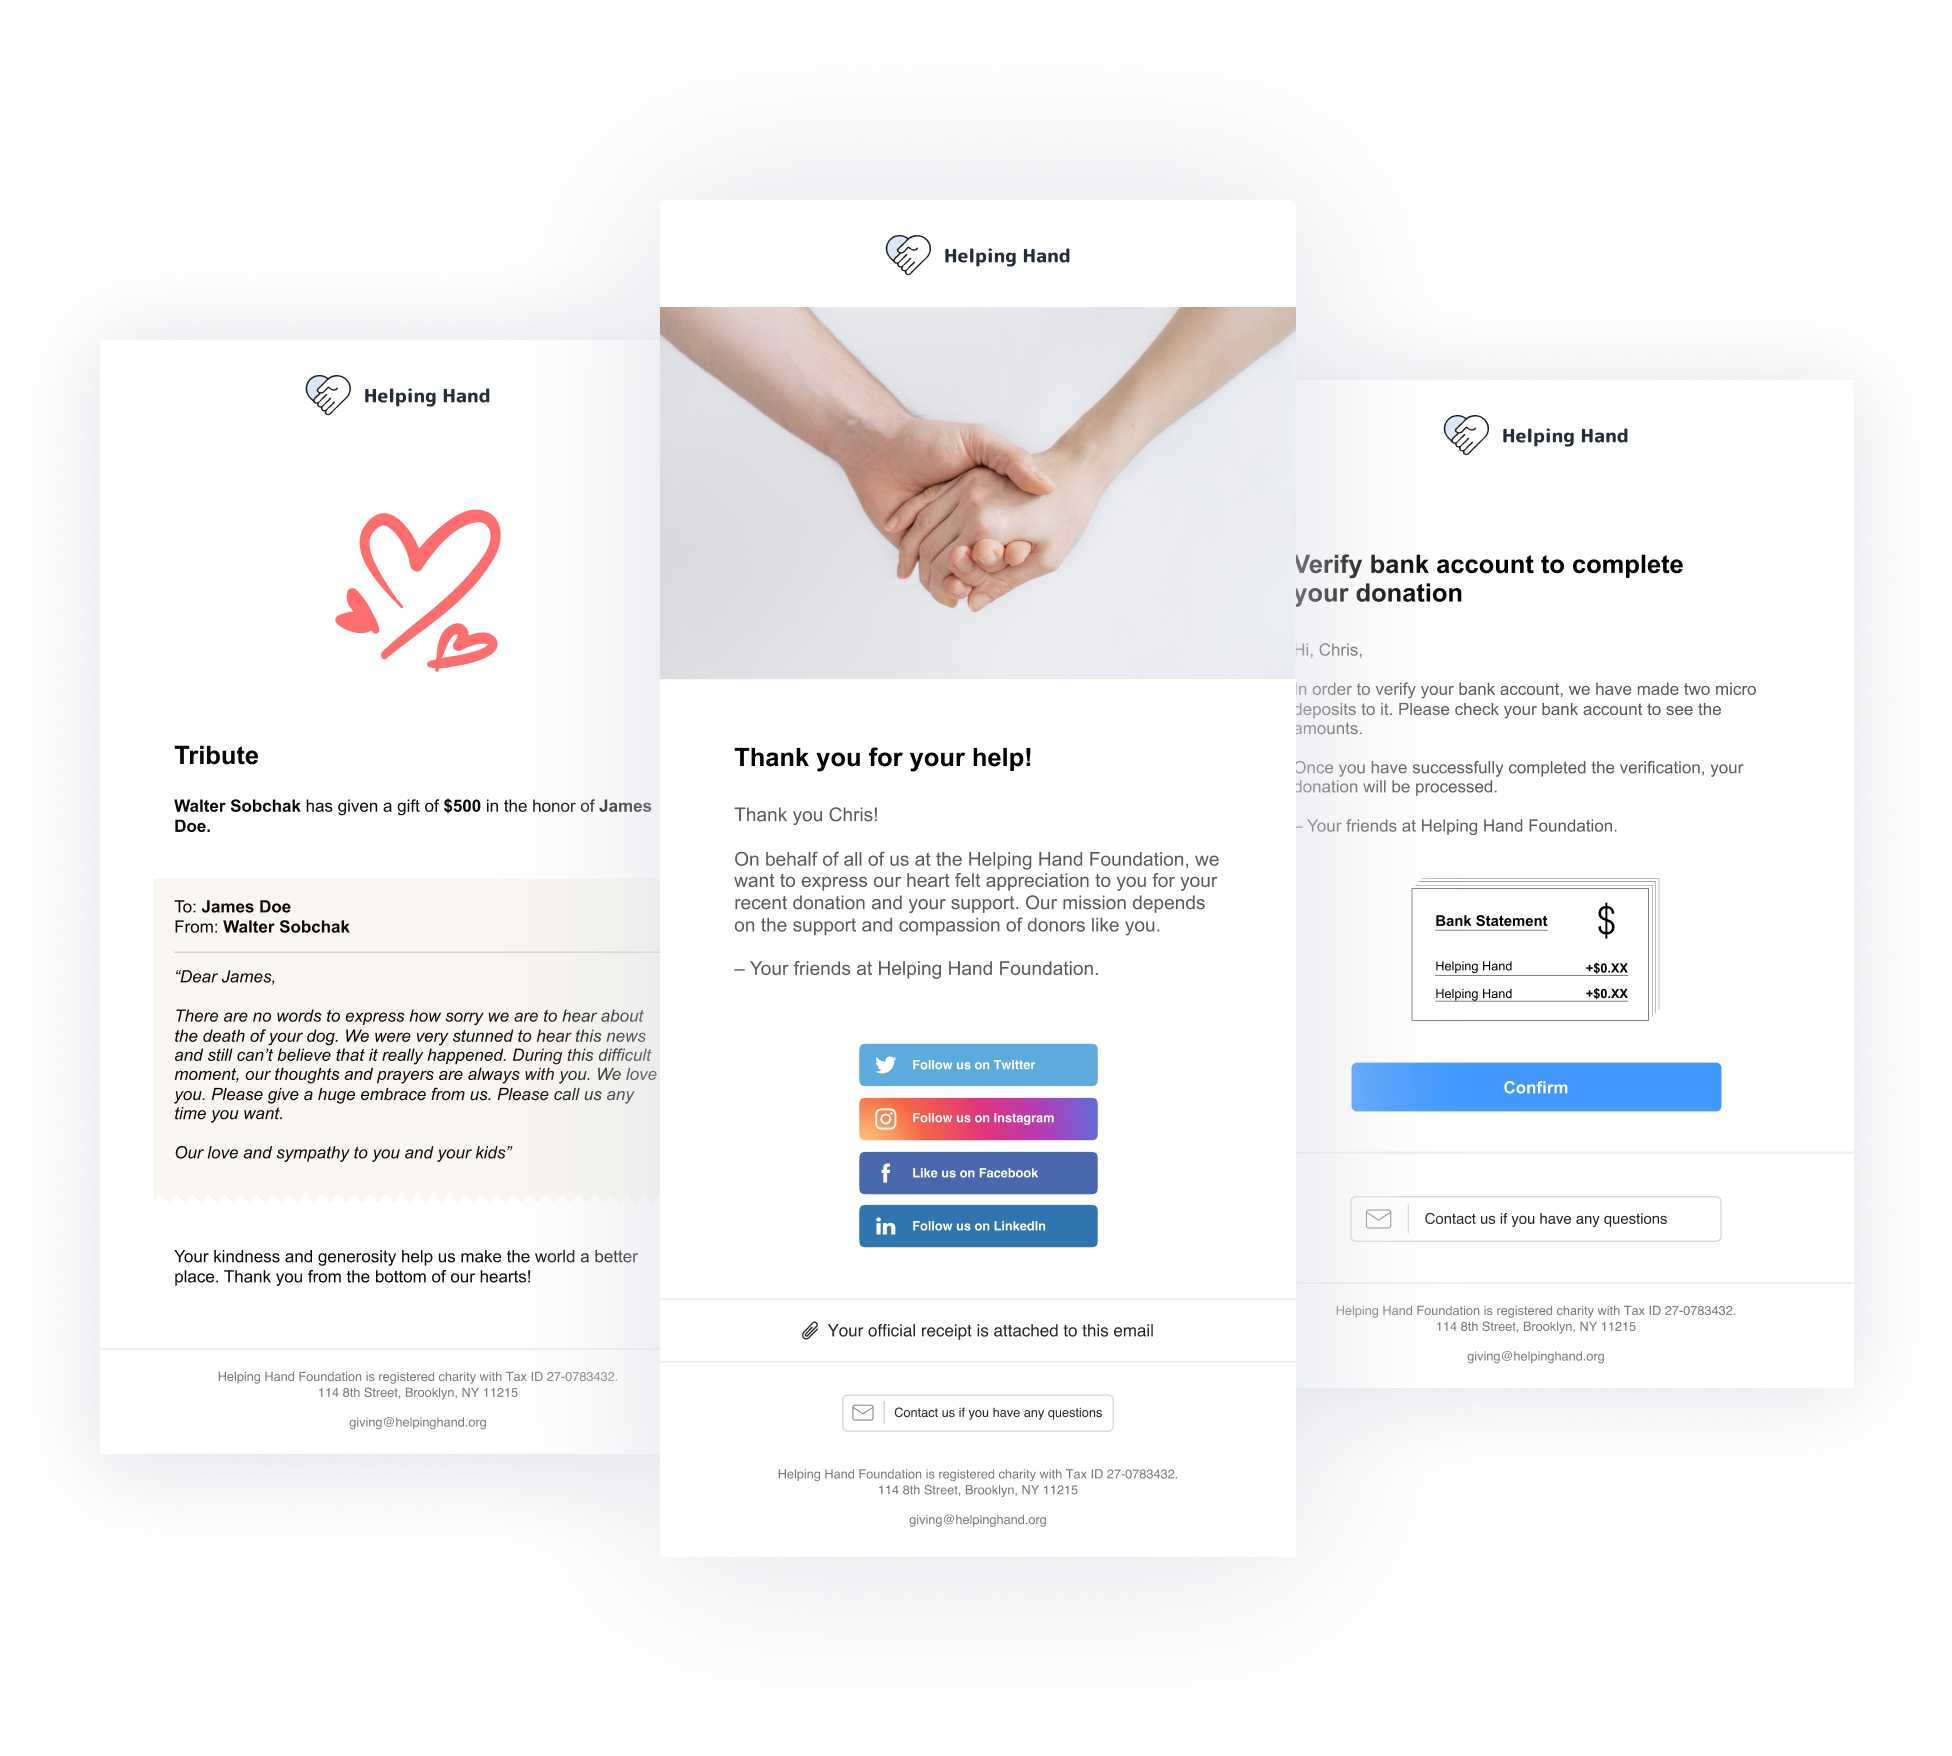 Automated Emails – Fundraise Up